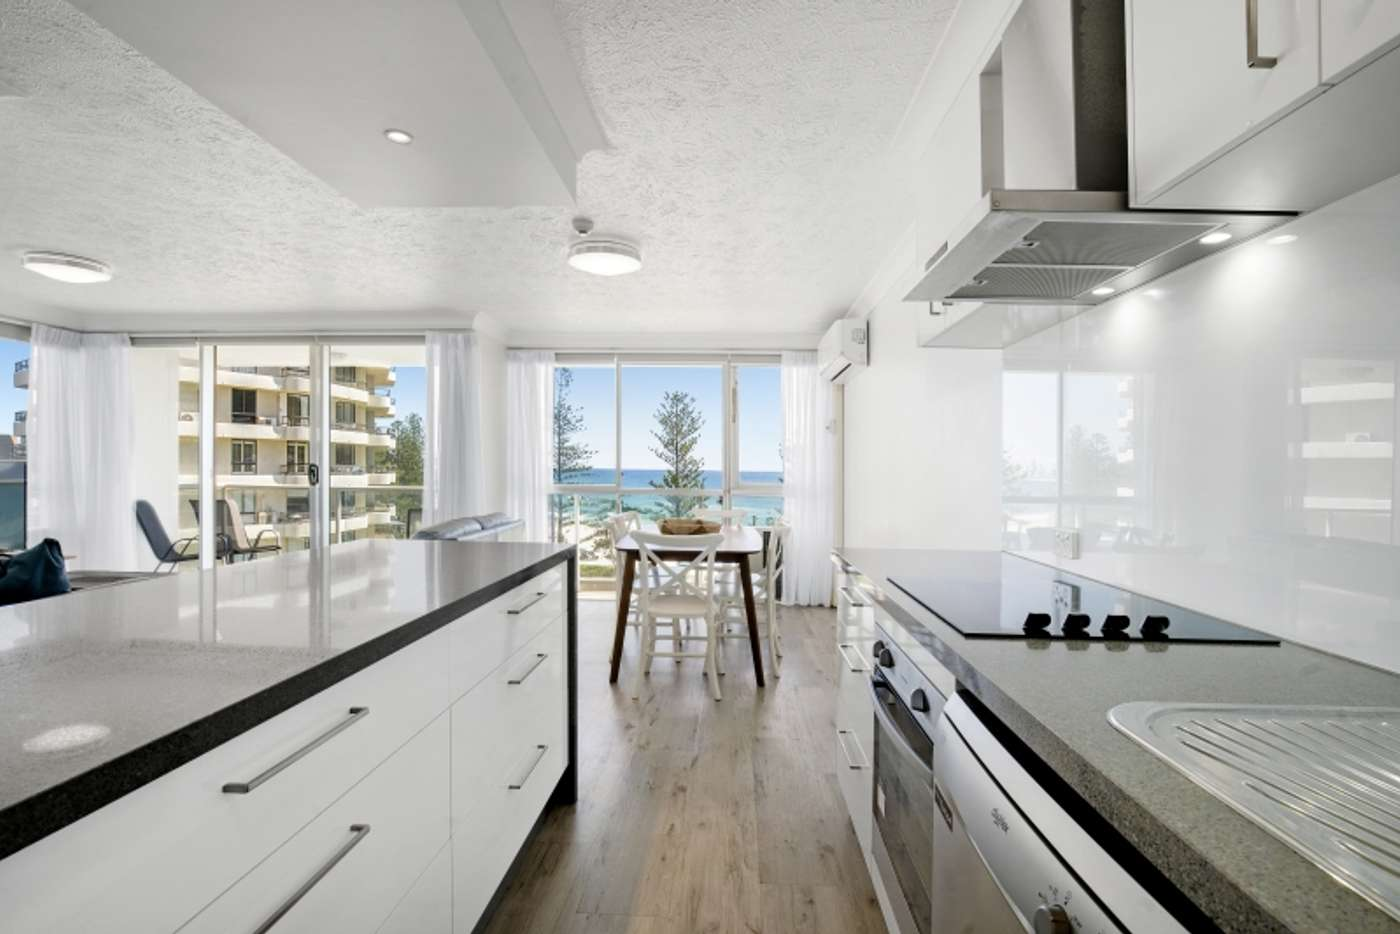 Main view of Homely apartment listing, 6E/52 Goodwin Terrace, Burleigh Heads QLD 4220